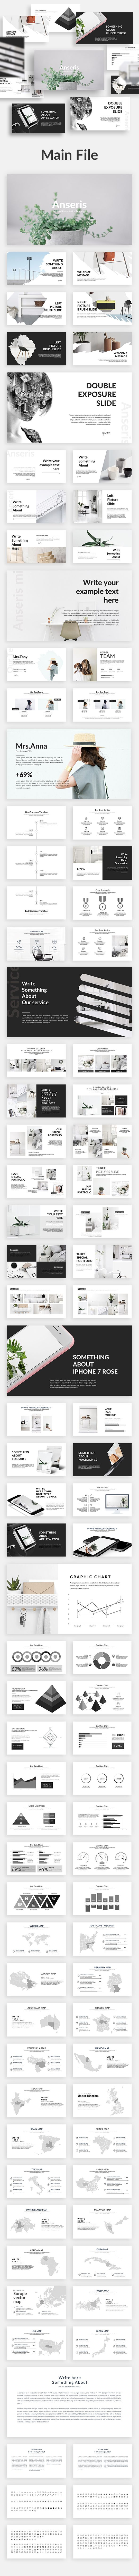 Anseris - Minimal Powerpoint Template. Download: https://graphicriver.net/item/anseris-minimal-powerpoint-template/19493819?ref=thanhdesign